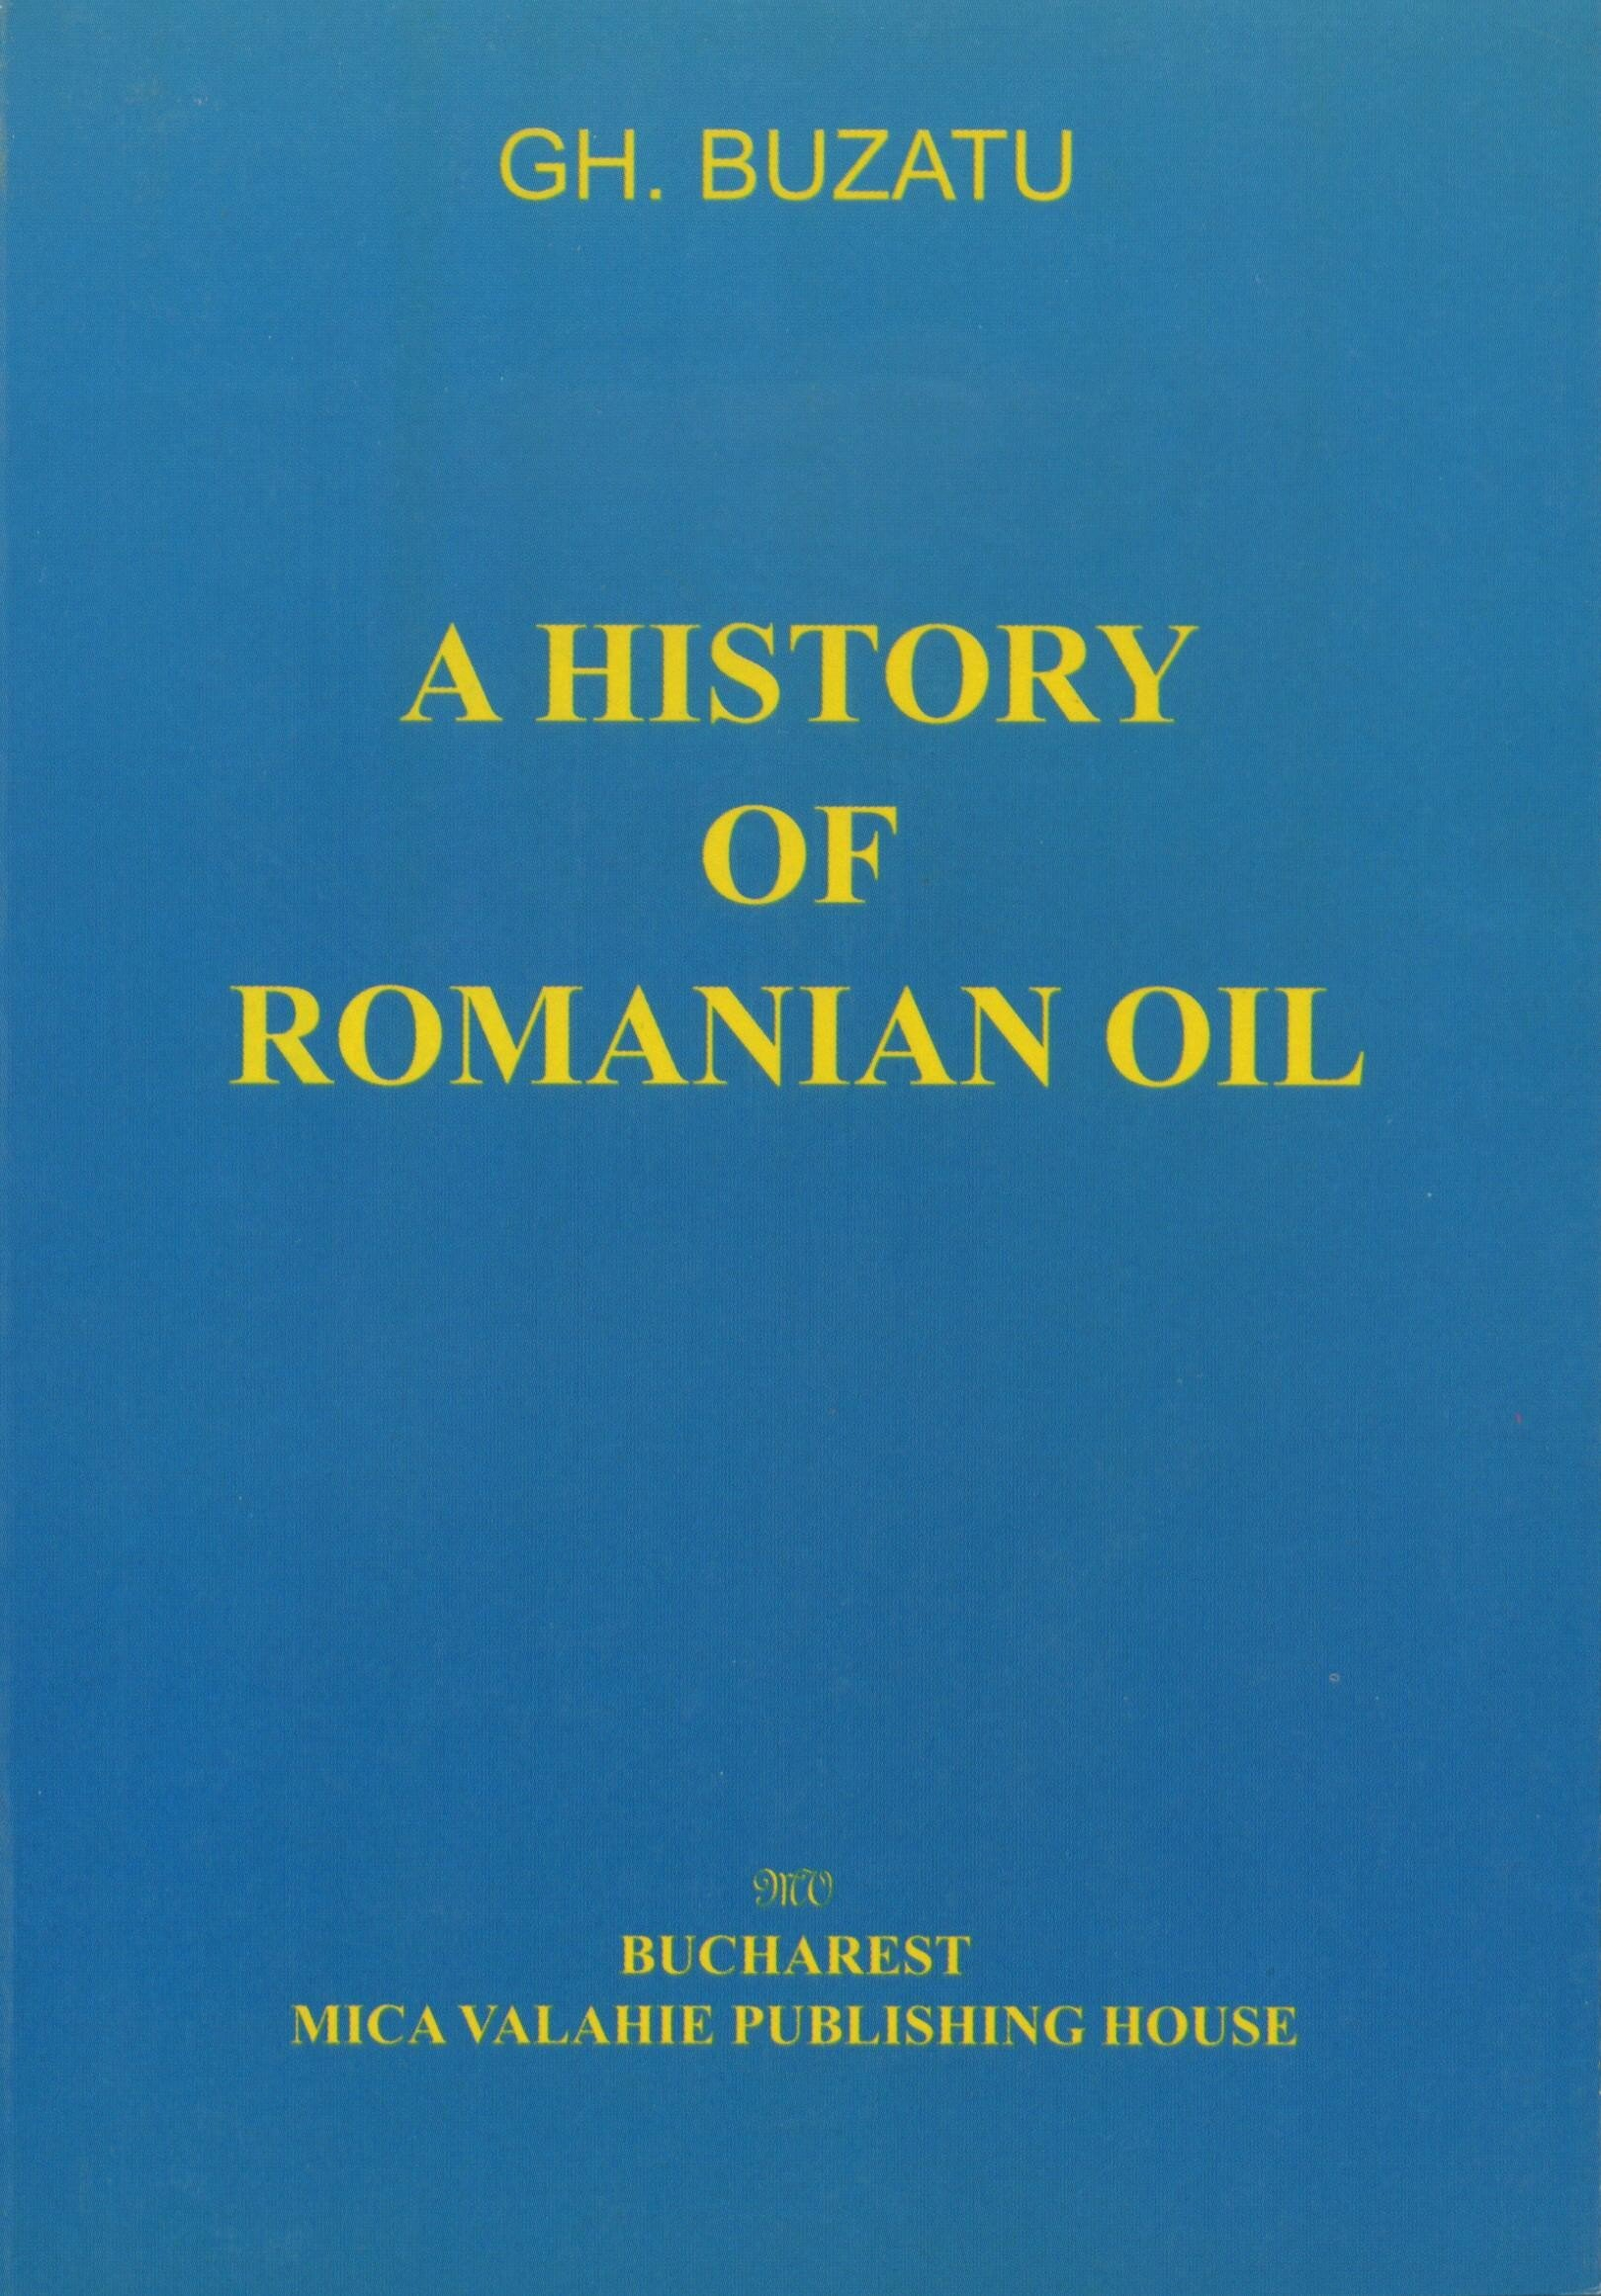 A history of romanian oil vol. I (eBook)